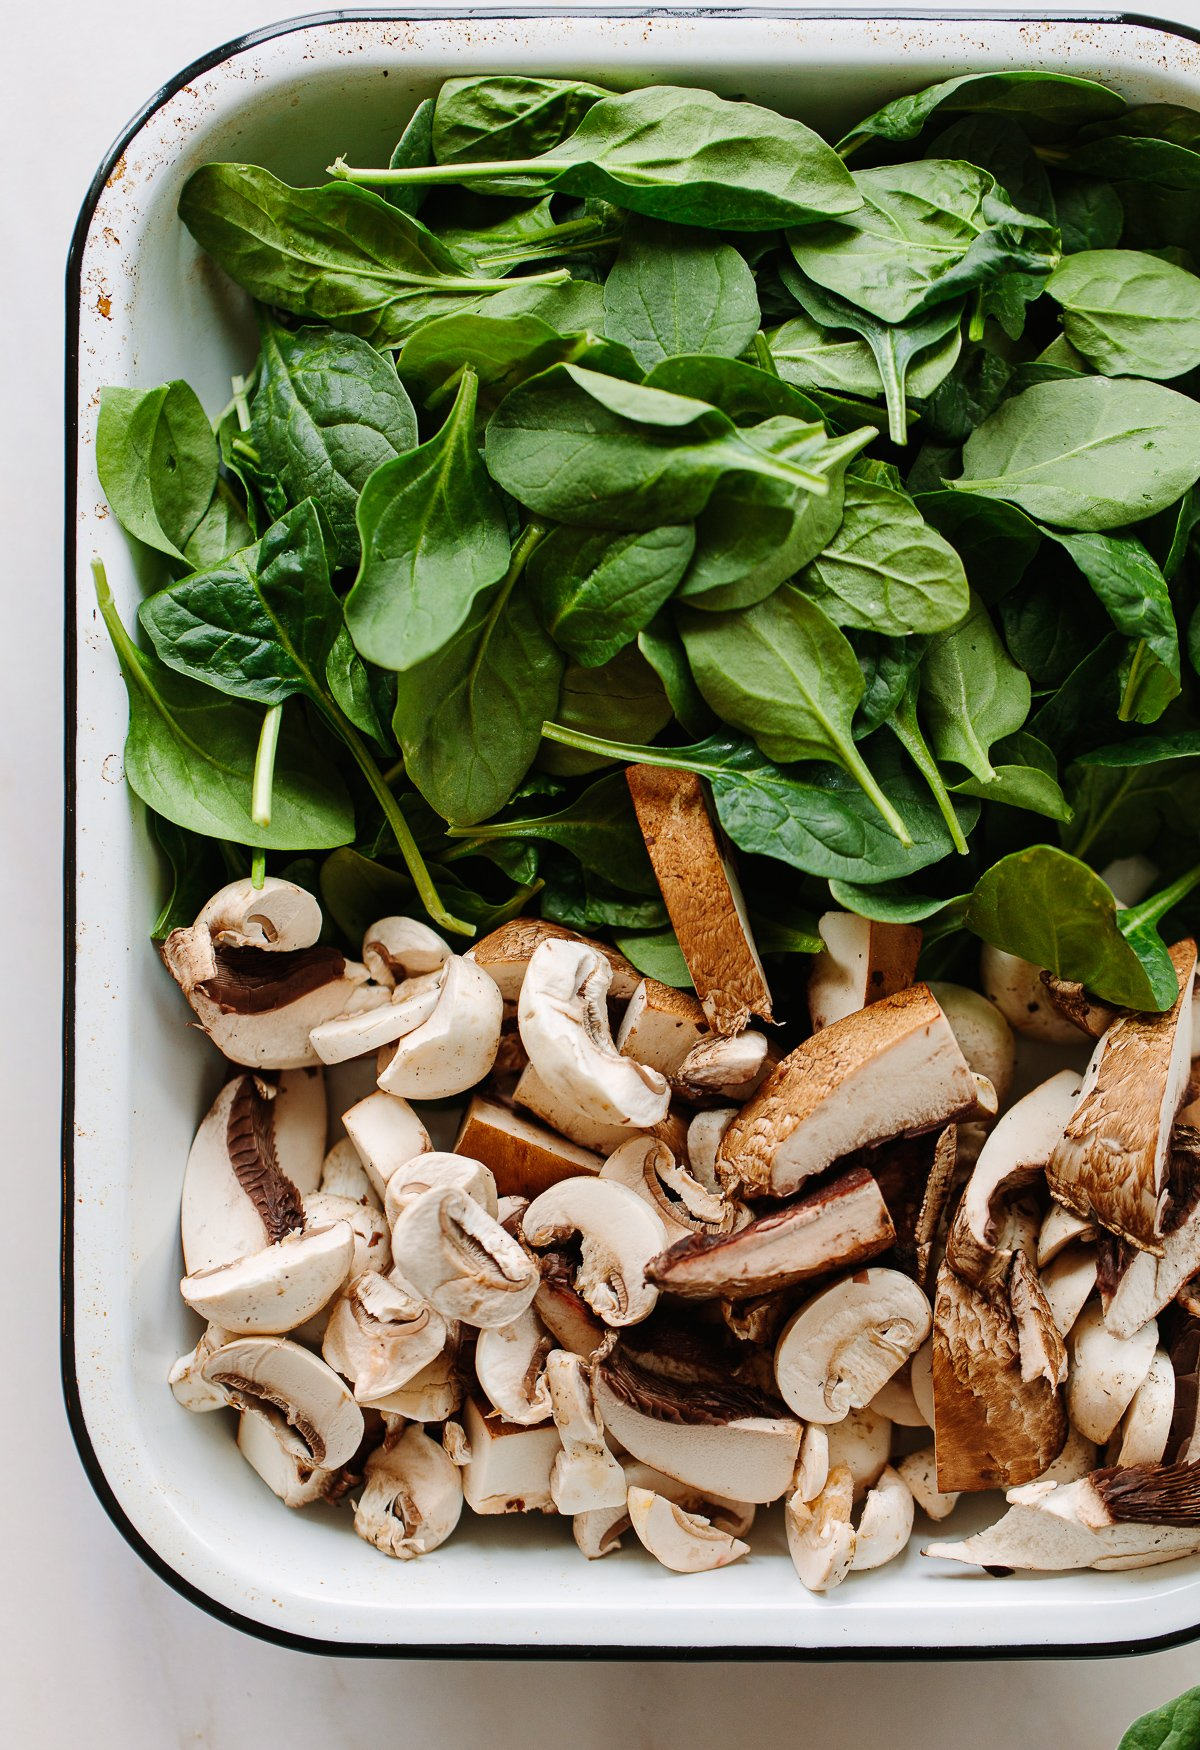 A rectangular enamel tray with raw button mushrooms and a pile of fresh spinach leaves.